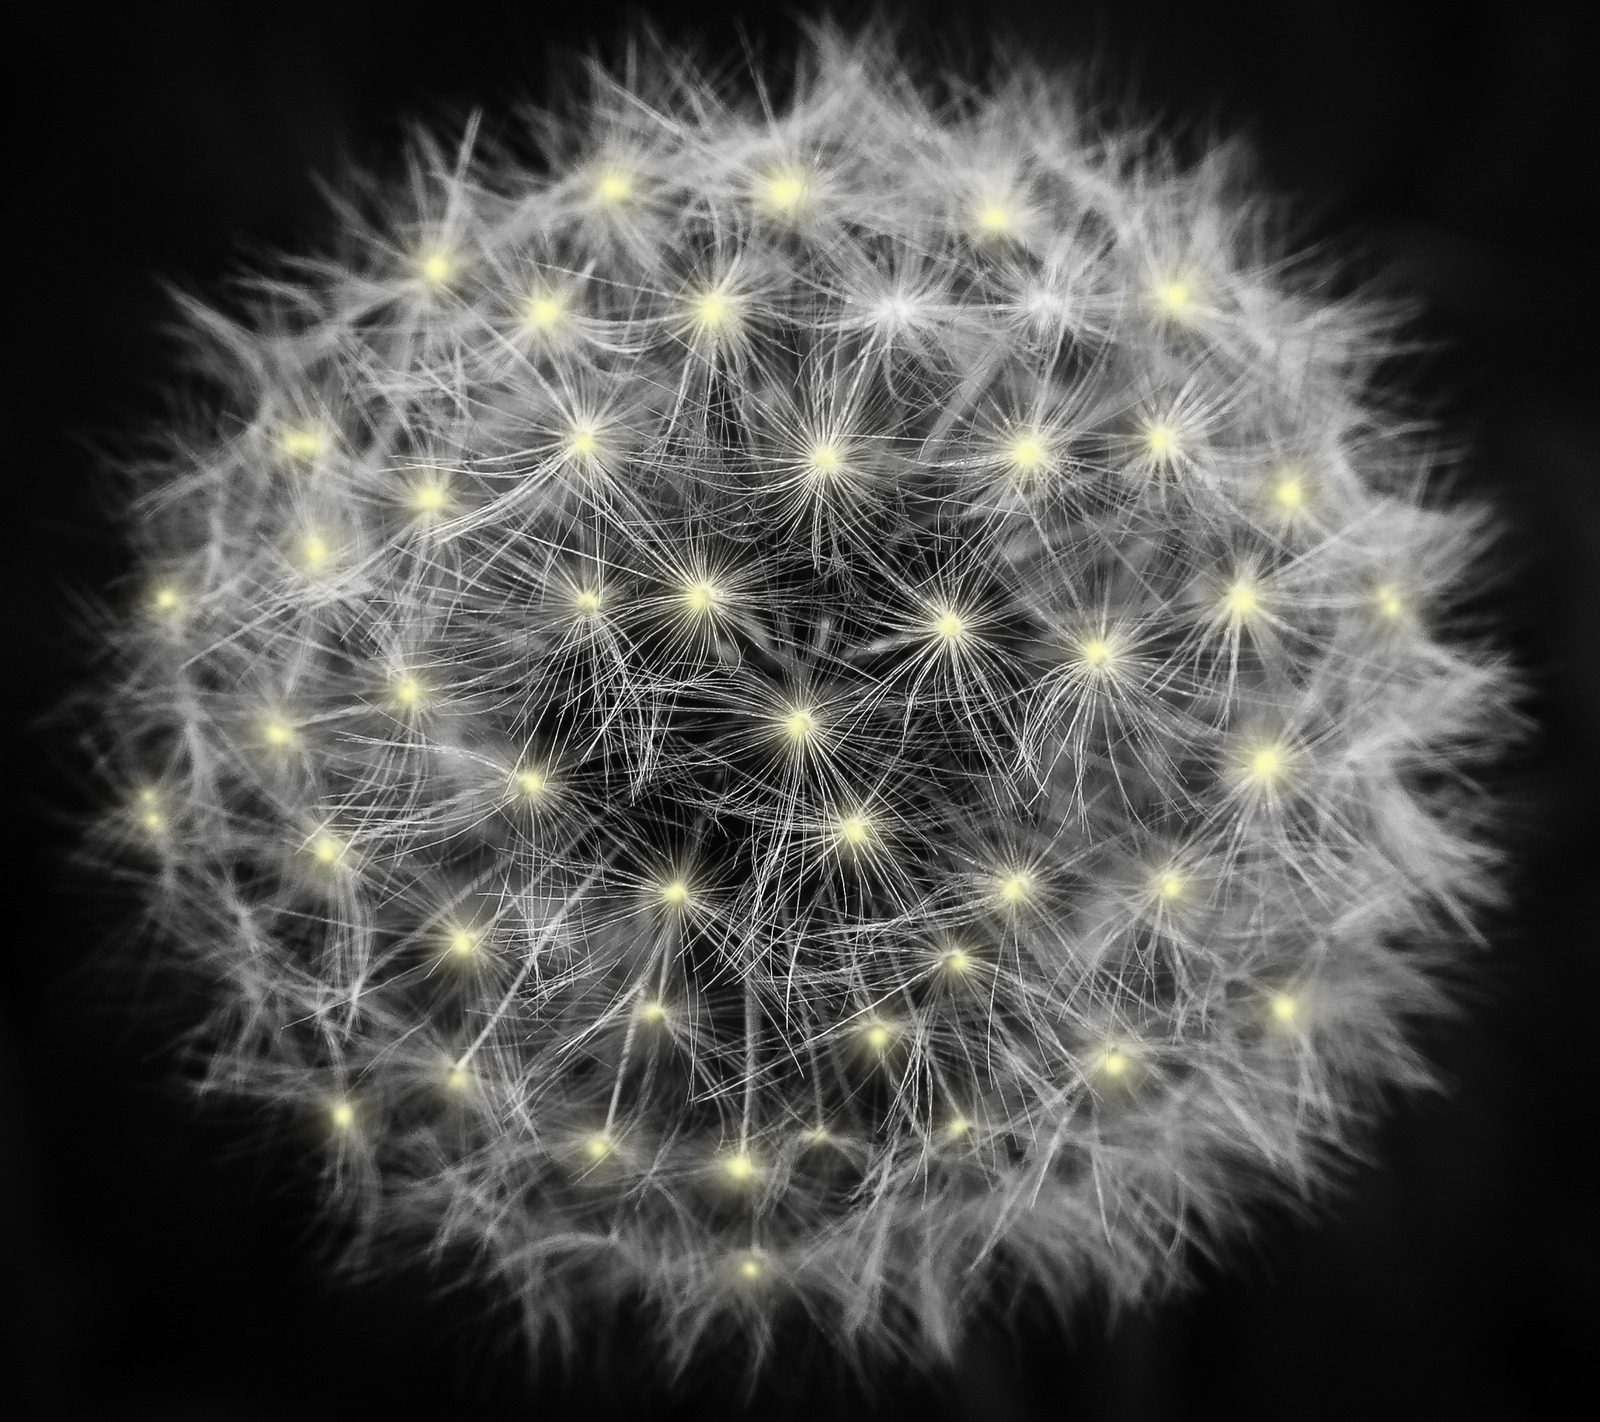 Canva - White Dandelion